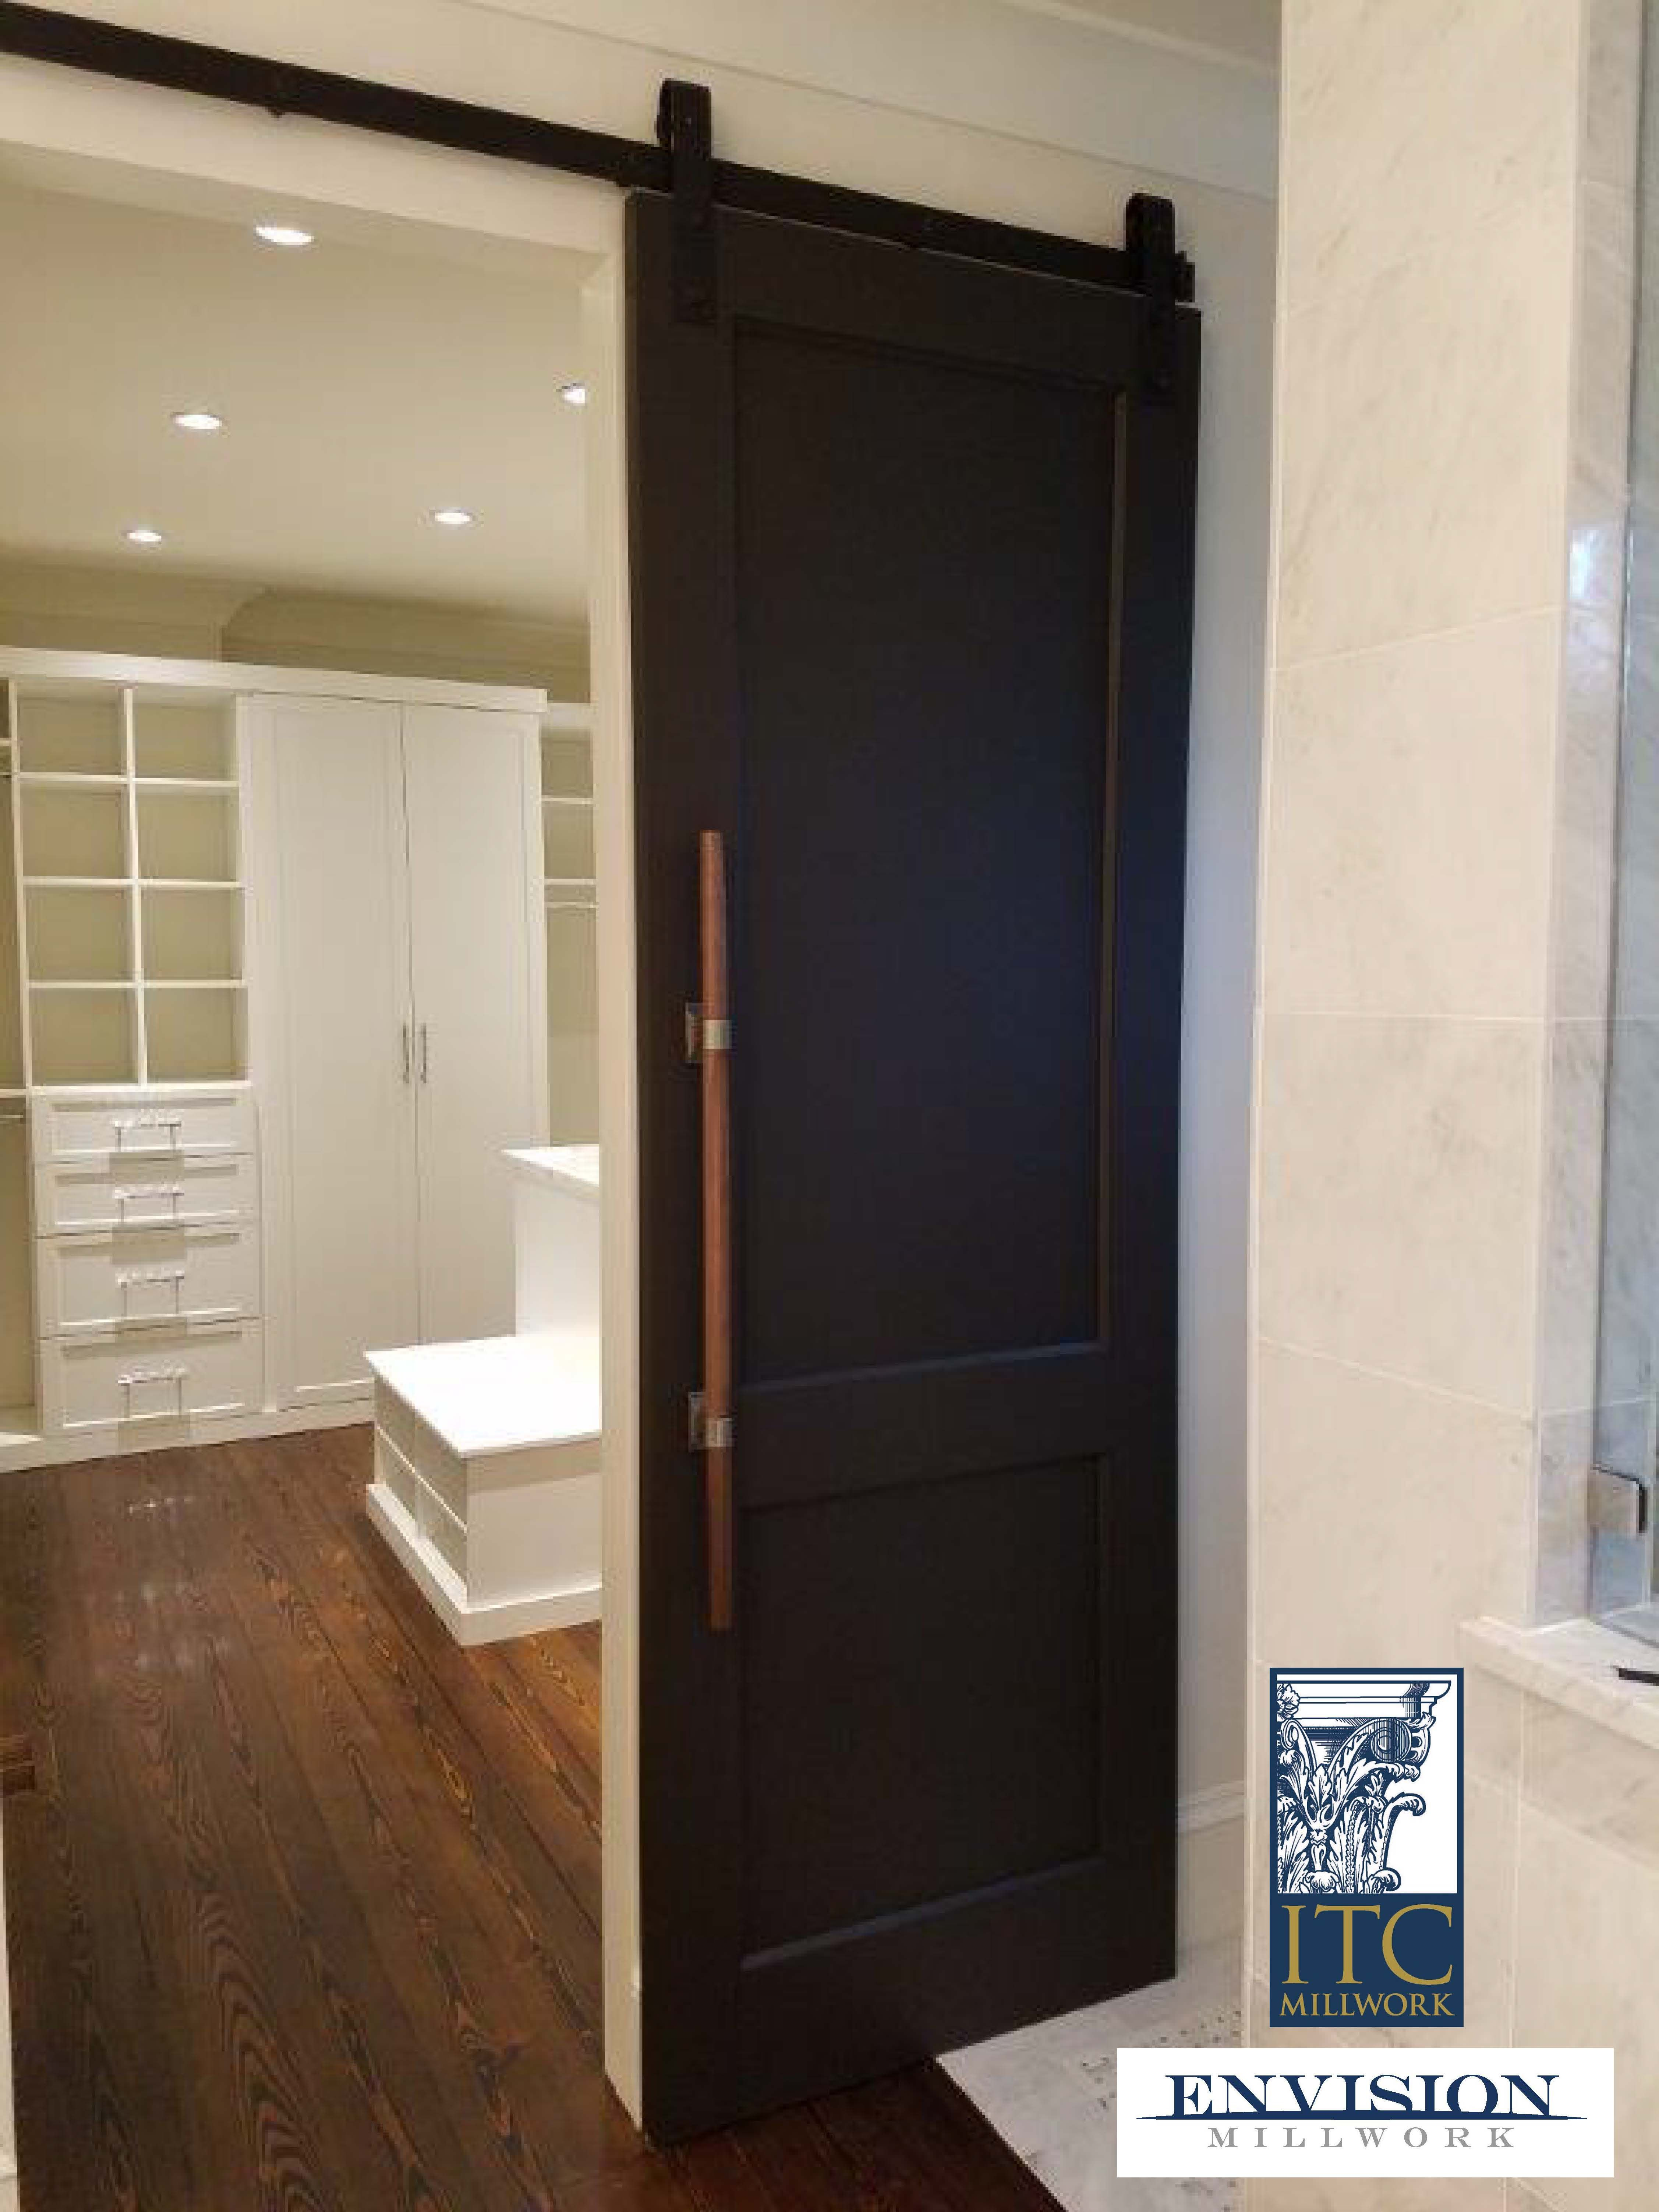 Recent ITC Millwork Bath To Closet Barn Door Collaboration With Superstar  Installers Envision Millwork.